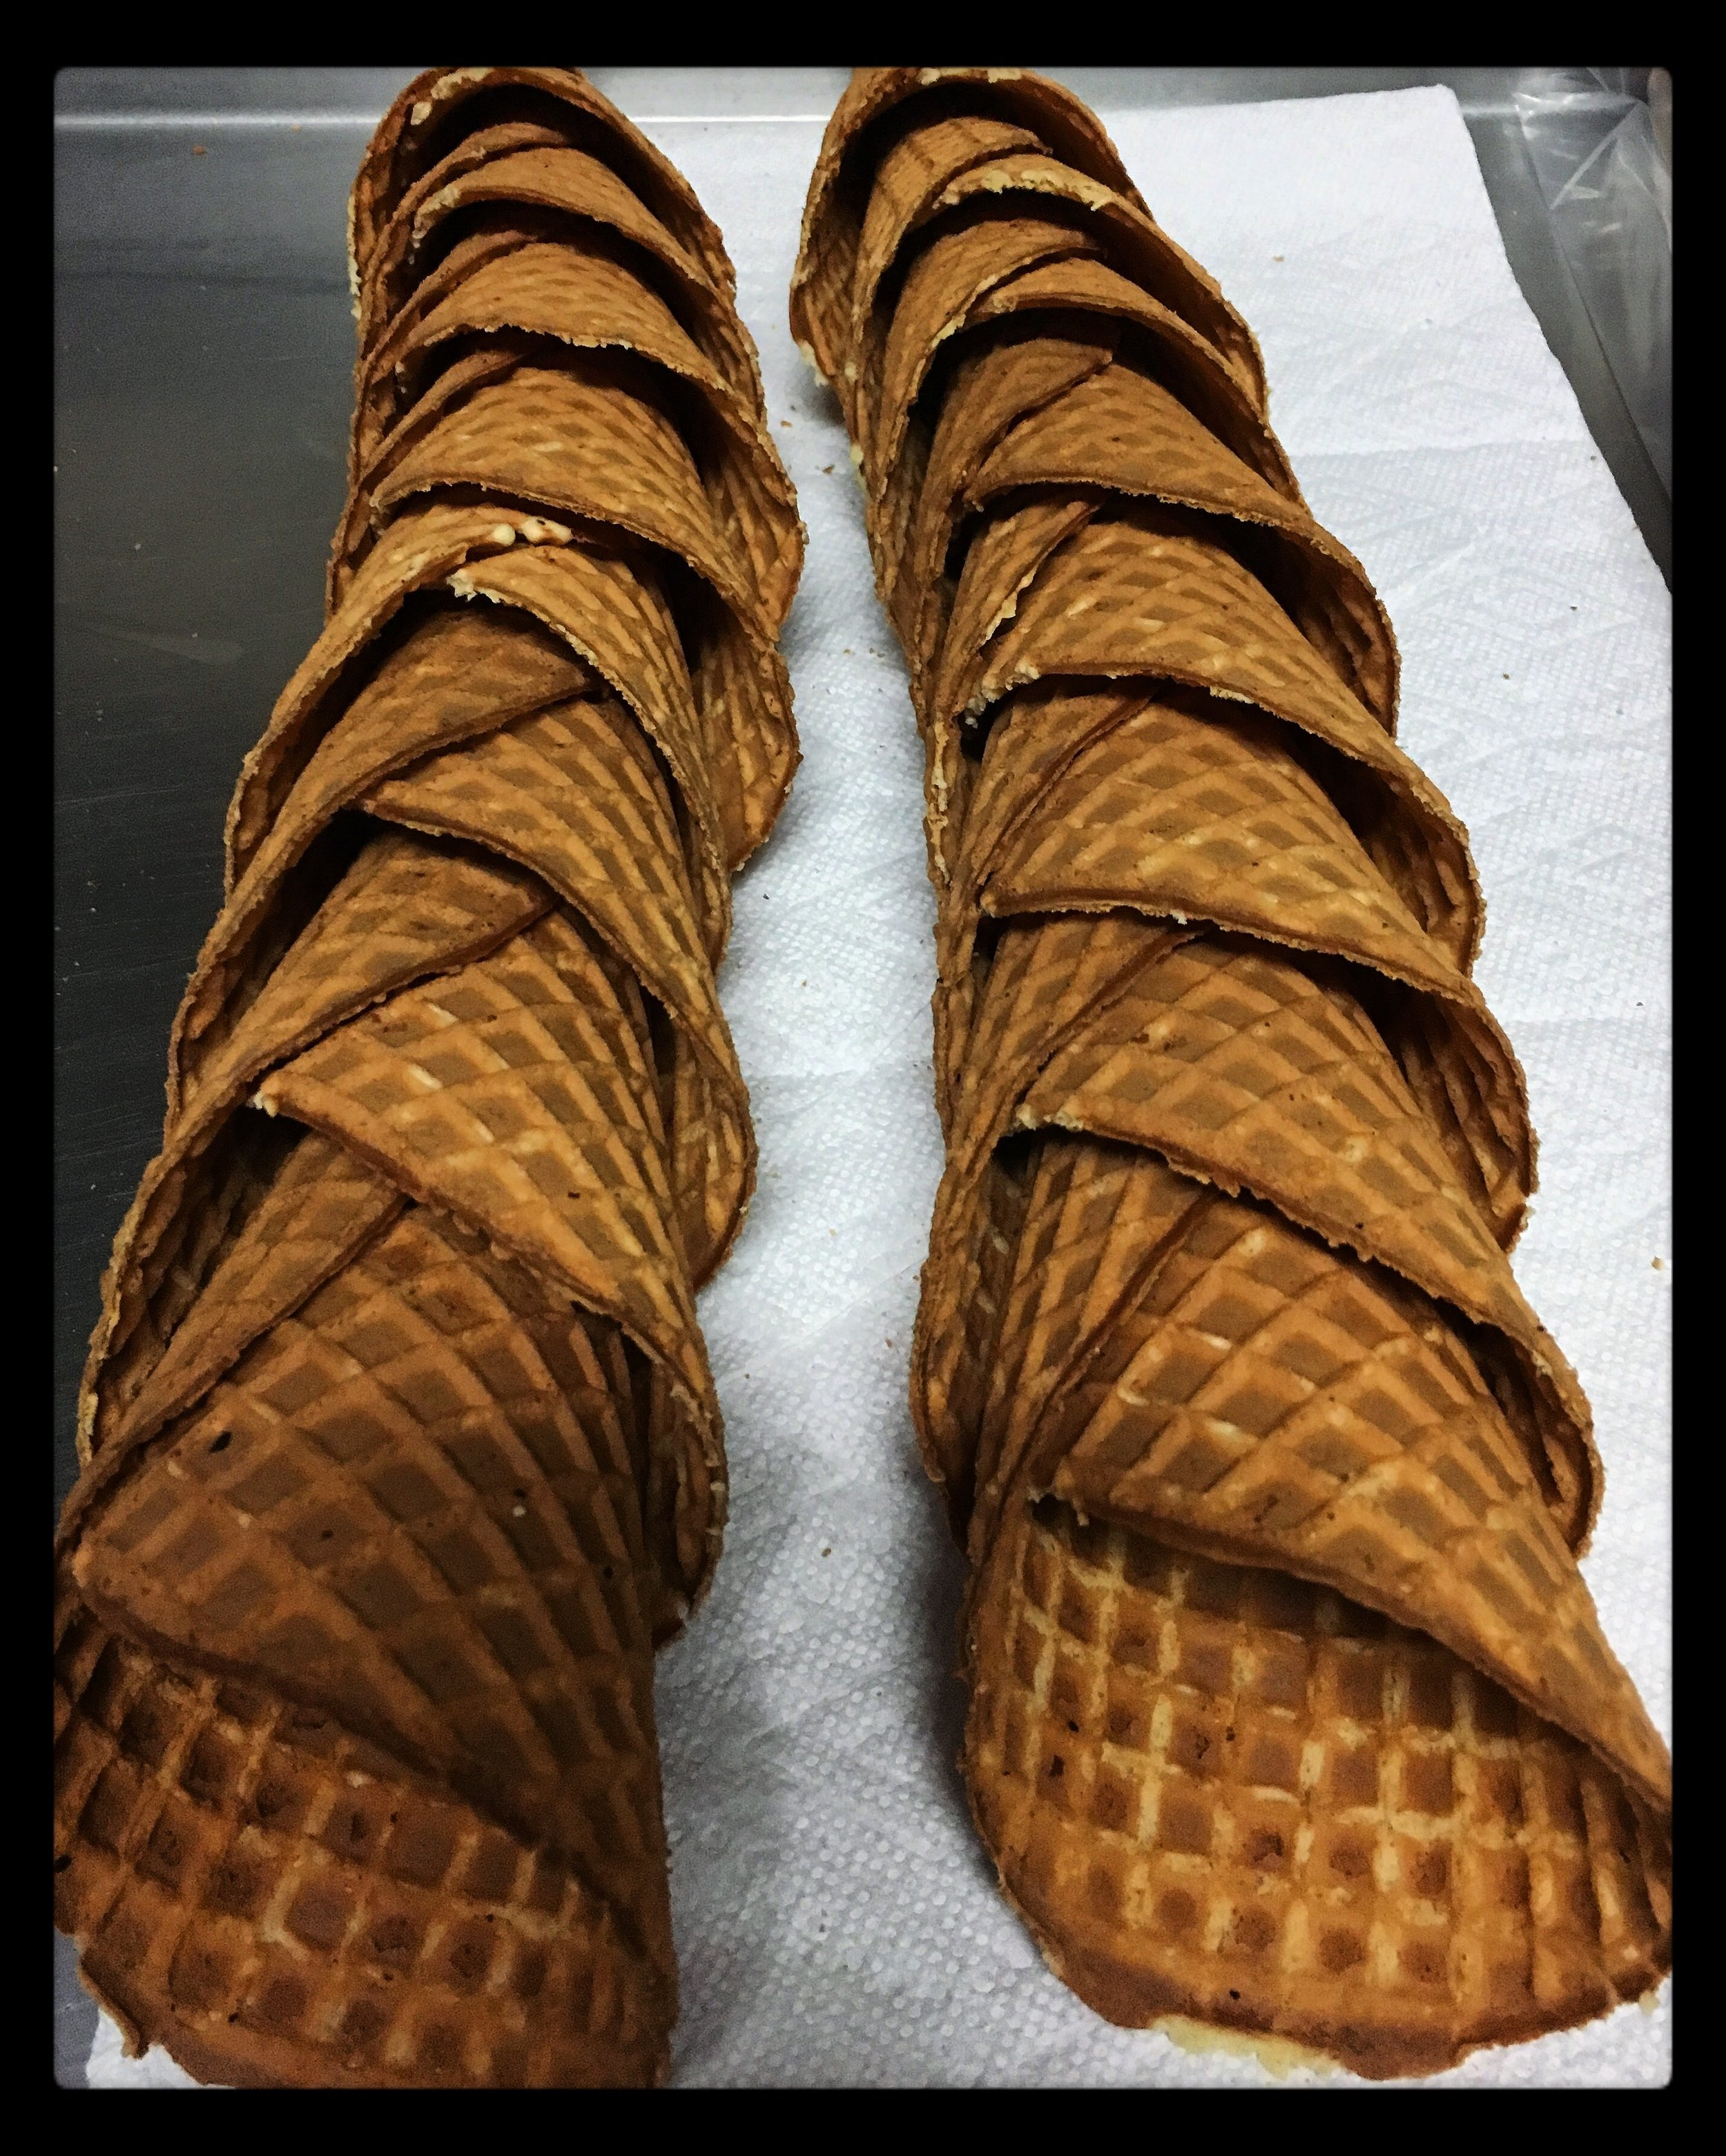 Store made waffle cones.